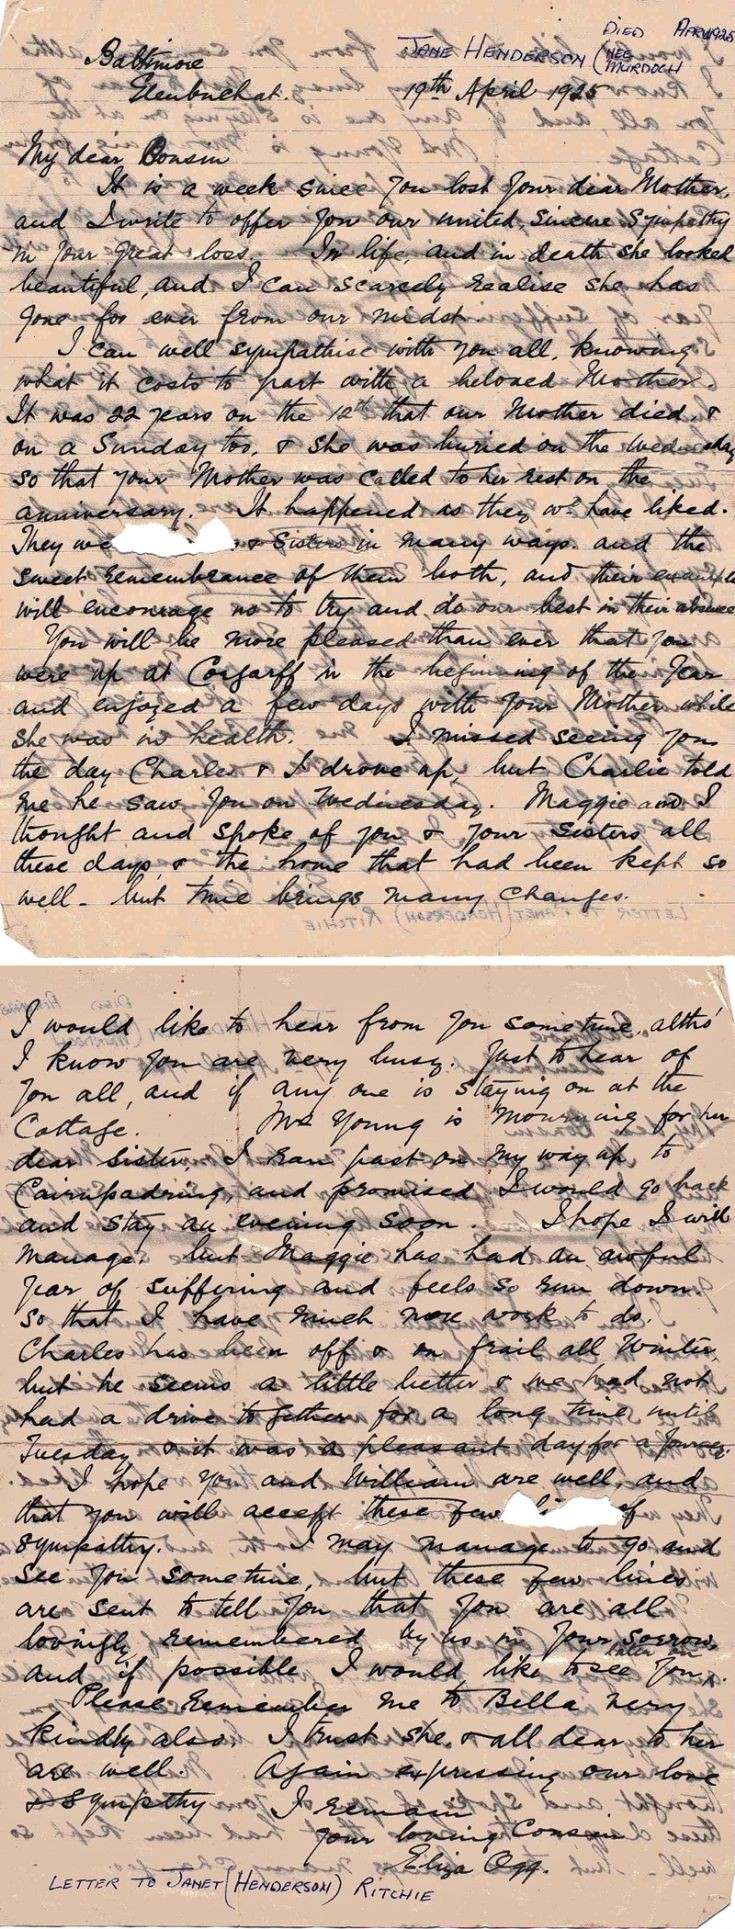 10 Letter to Jessie Ritchie from Eliza Ogg